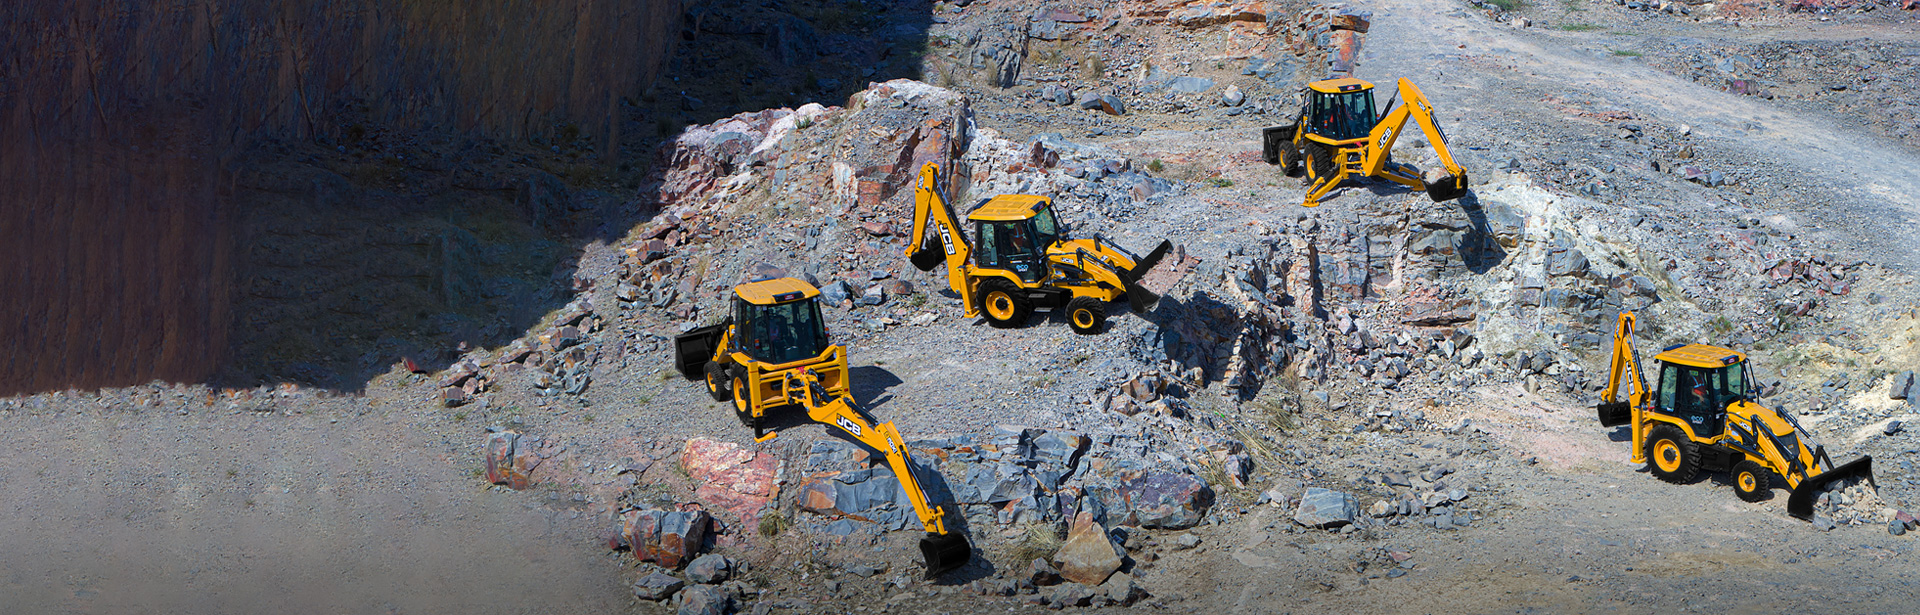 JCB Backhoe Loaders Ahmedabad